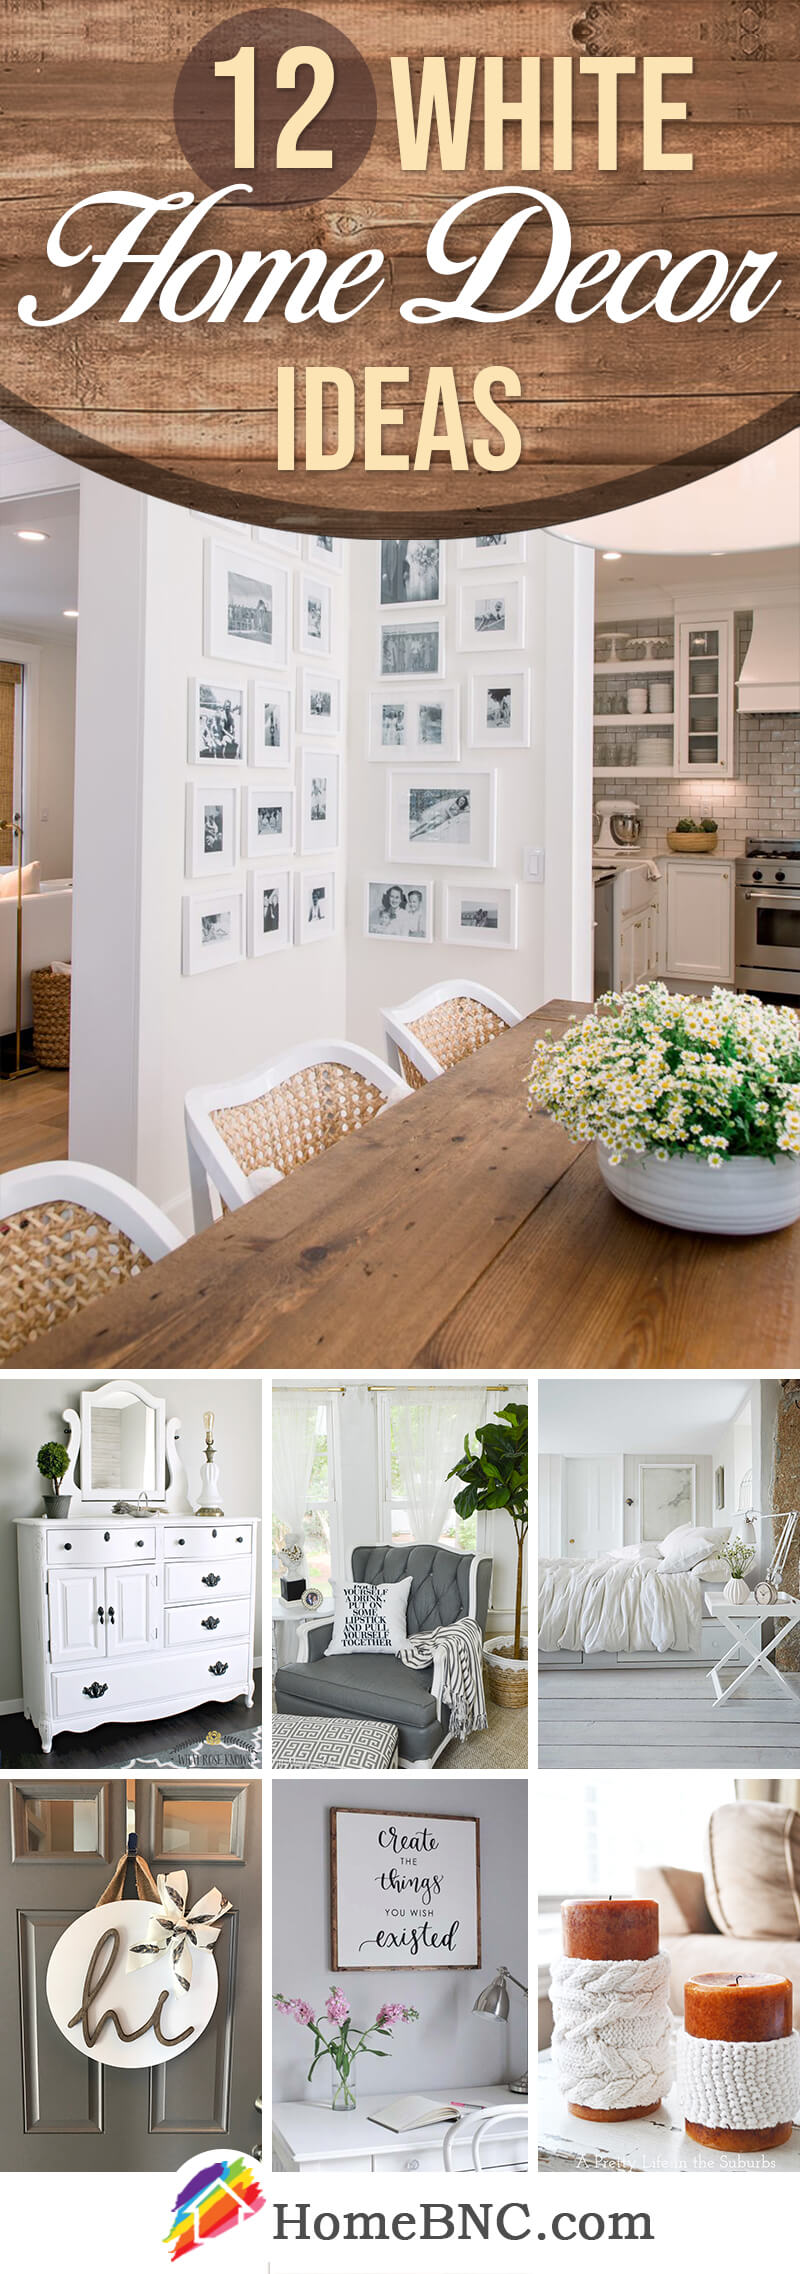 White Home Decor Ideas